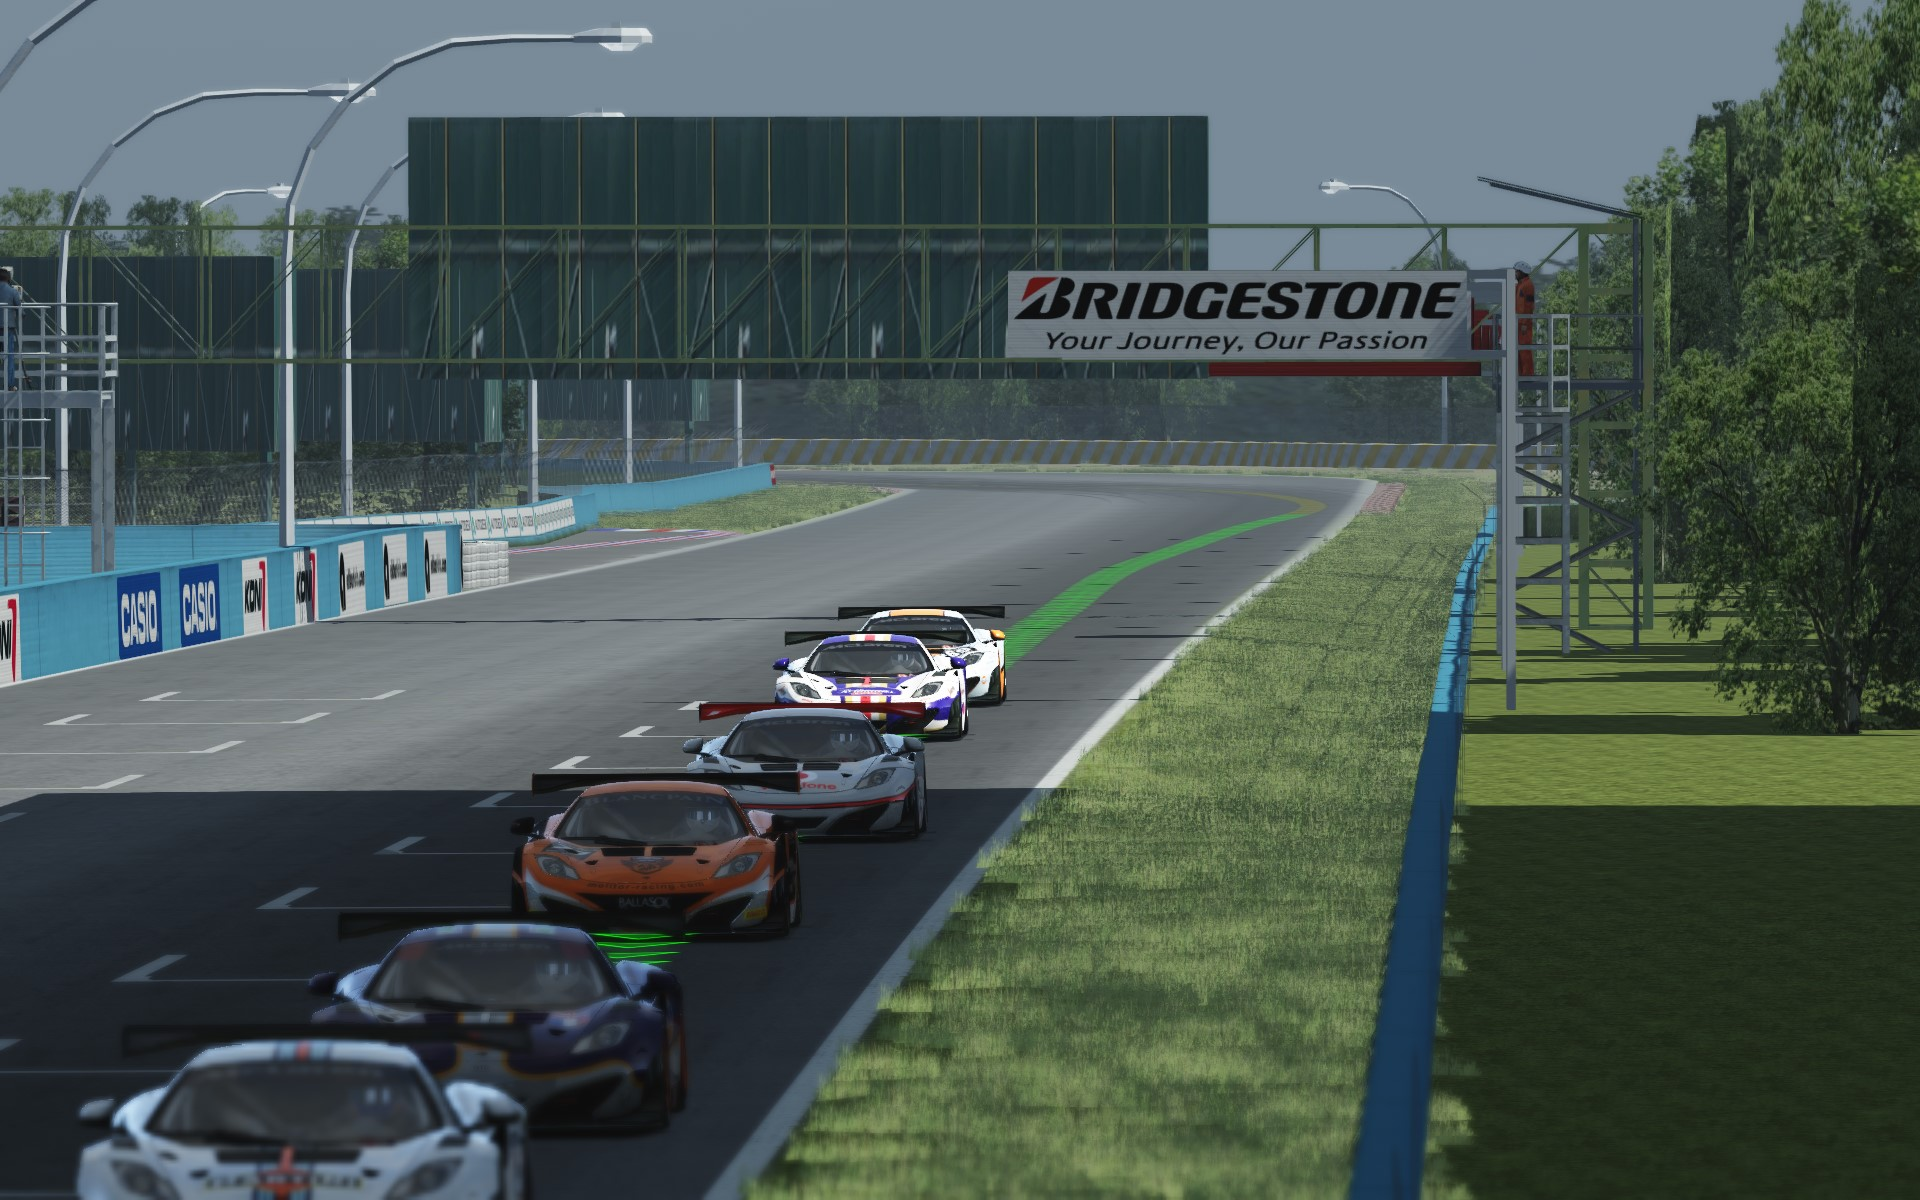 Screenshot_mclaren_mp412c_gt3_sentul_circuit_30-7-115-12-39-30.jpg